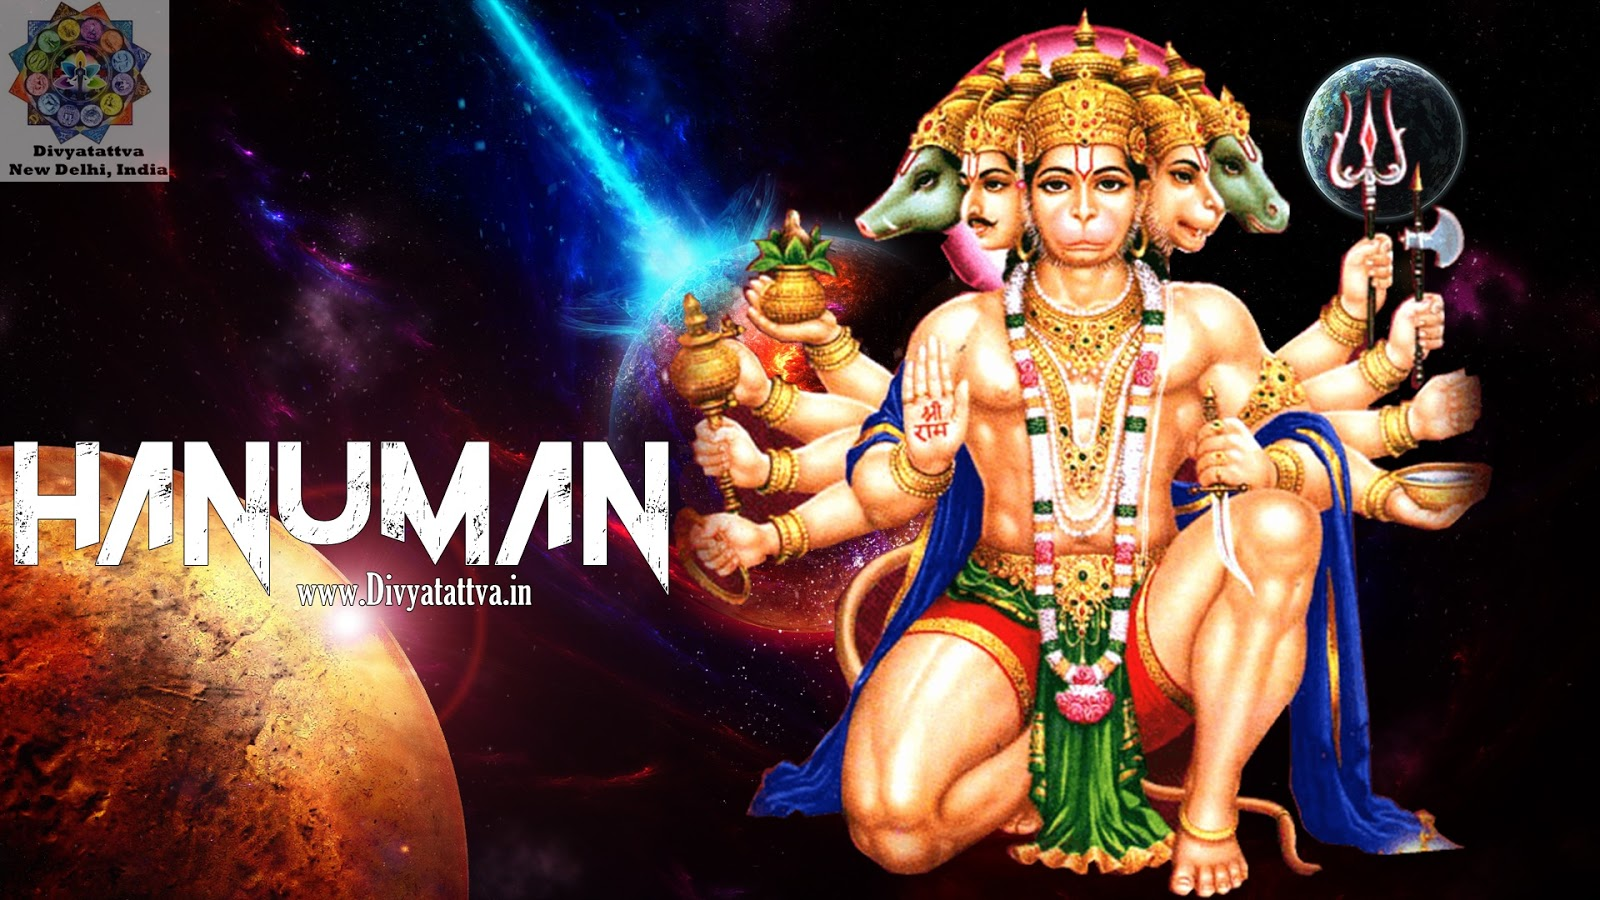 Divyatattva Astrology Free Horoscopes Psychic Tarot Yoga Tantra Occult Images Videos Lord Hanuman Hd Wallpapers Hanuman 4k Hd Wallpaper Images In Hd